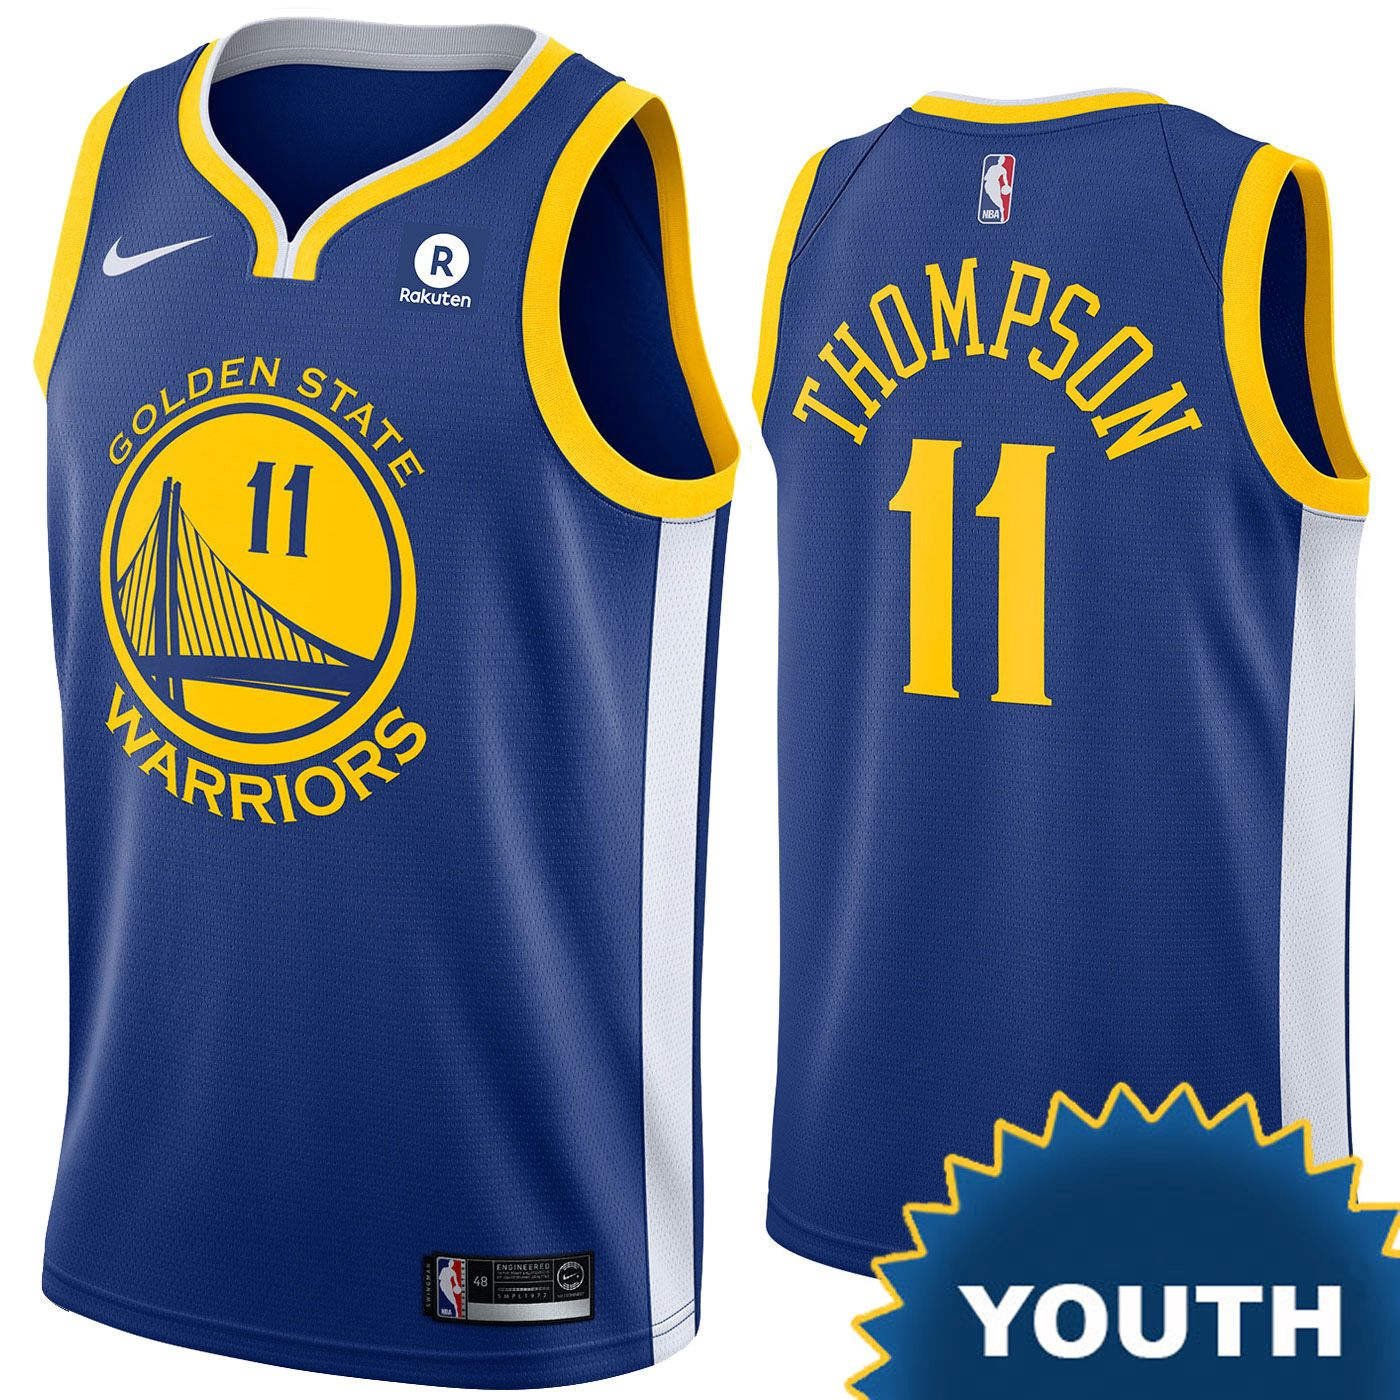 c5186c4ae6a7 Golden State Warriors Nike Dri-FIT Youth Klay Thompson  11 Swingman Icon  Jersey - Royal